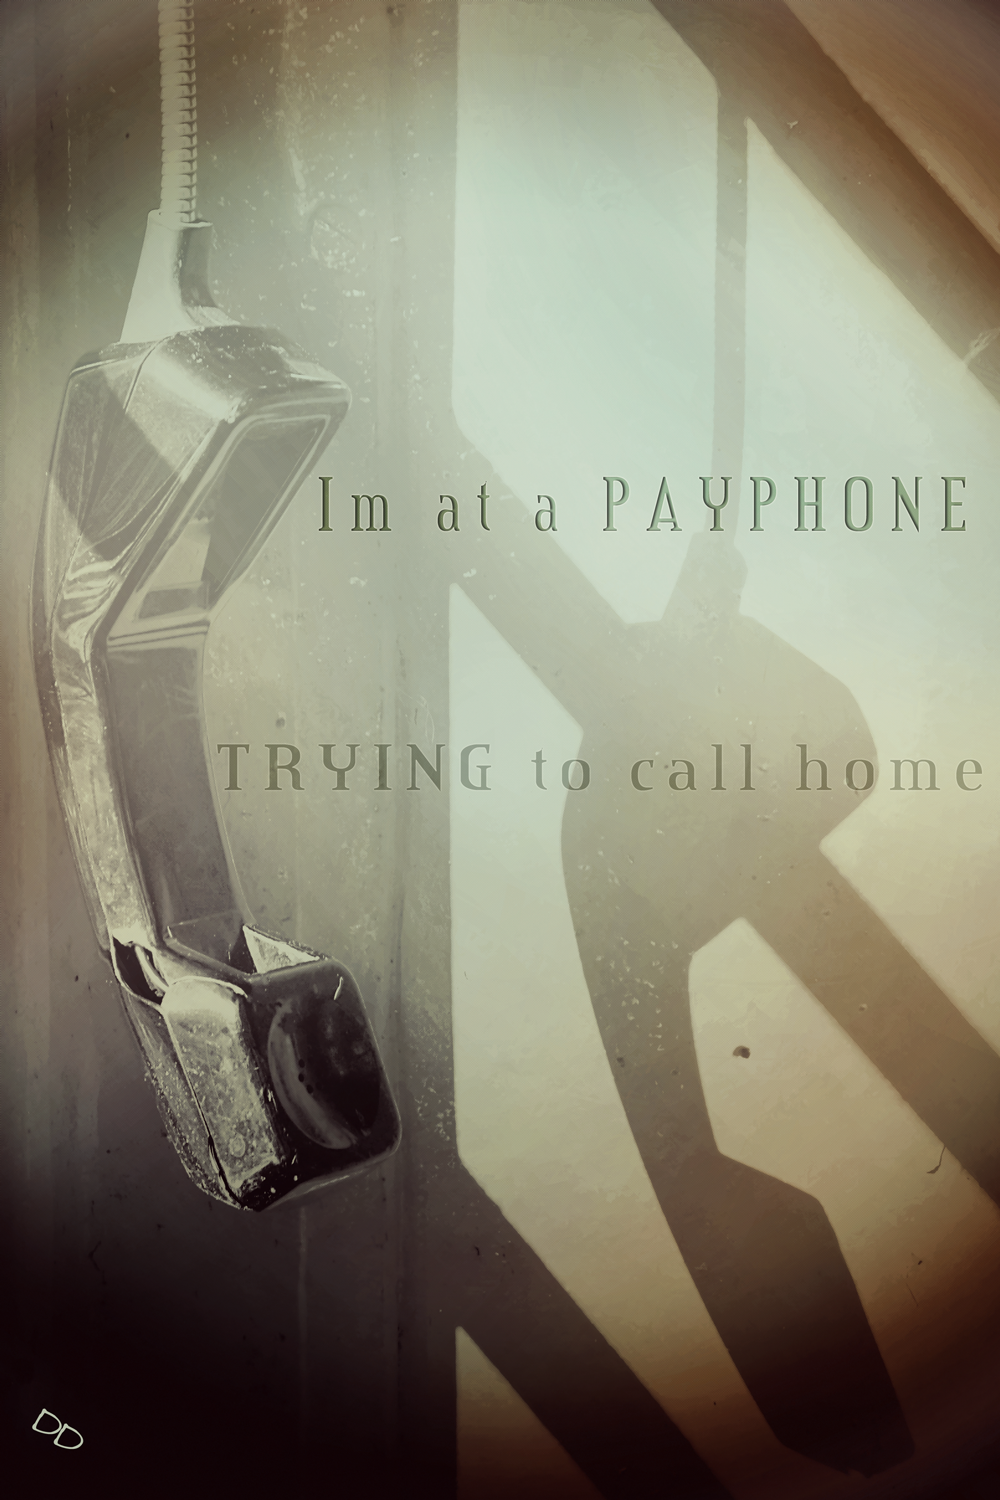 i'm at a payphone trying to call home